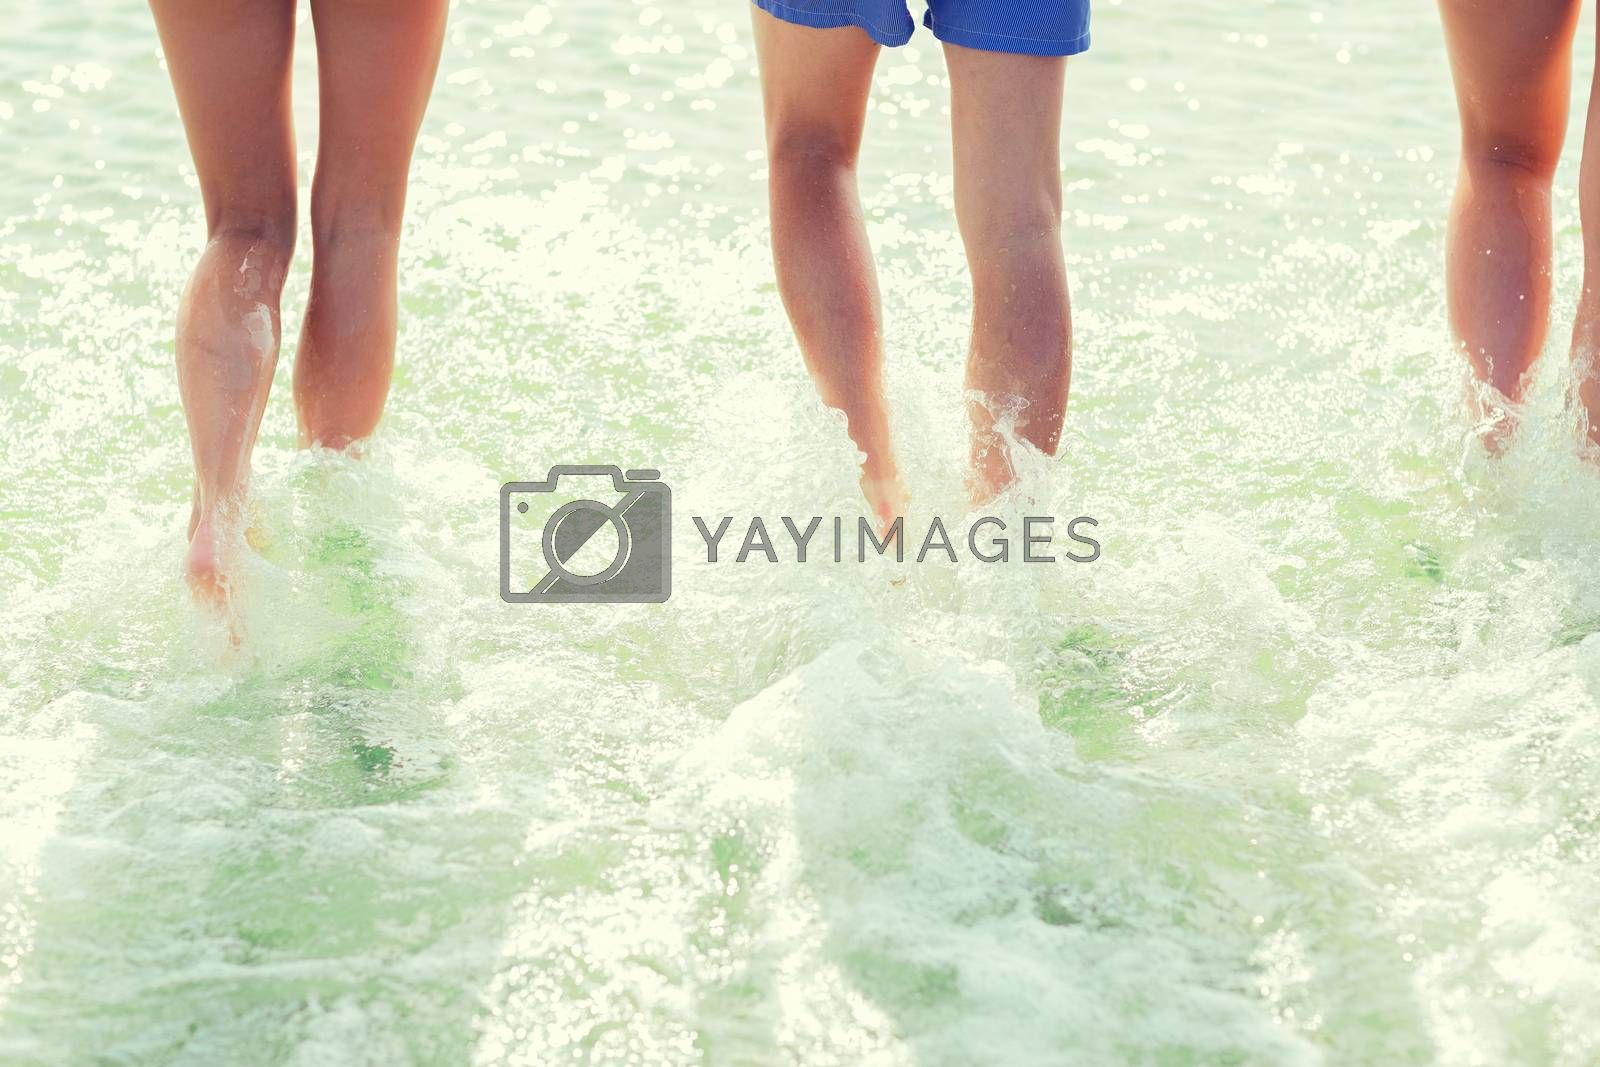 sea, summer vacation, holidays and people concept - close up of human legs walking on summer beach